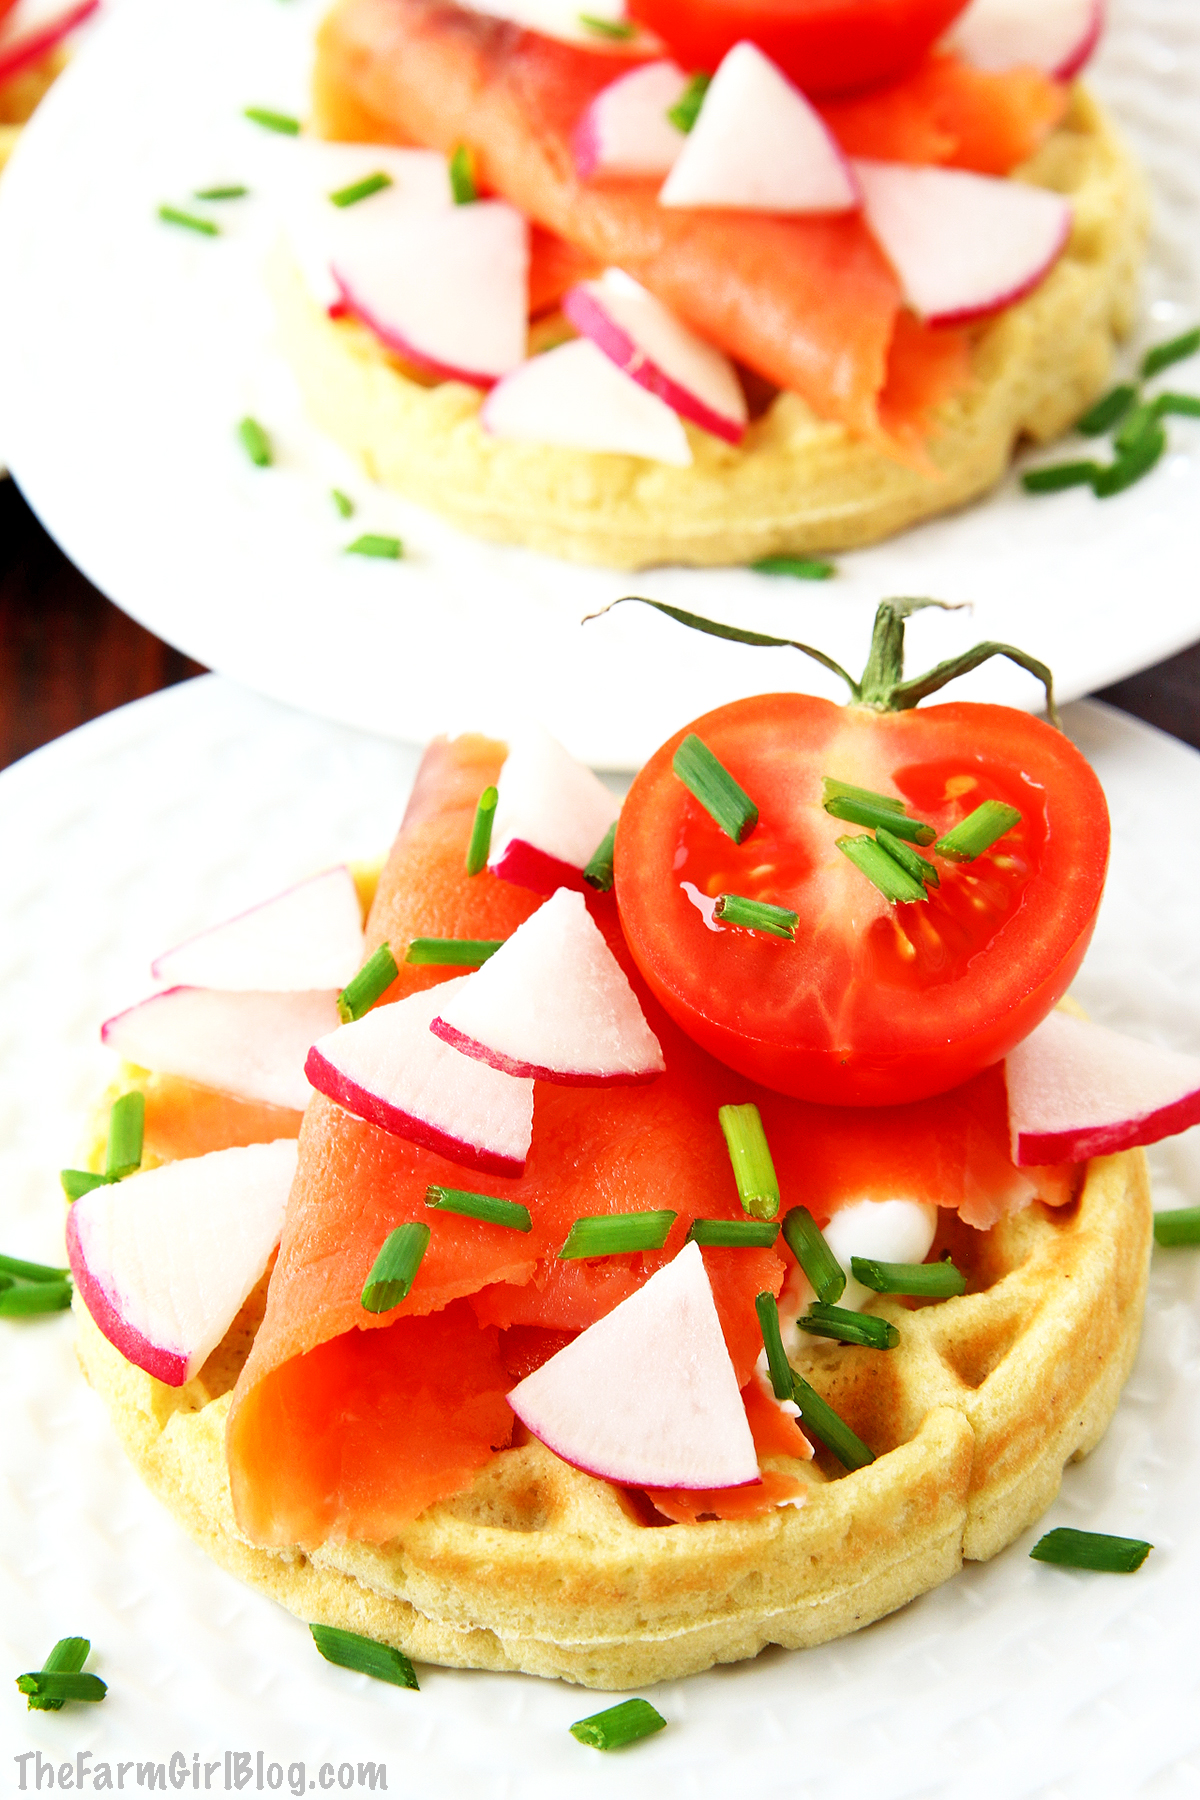 These Gluten-Free Waffles Recipe (Video) are light, tender, fluffy, low carb, keto-approved, and that actually tastes amazing! You can serve these waffles savory way is to top it with some Greek yogurt, salmon and your favorite vegetables or sweet with a large dollop of whipped heavy cream and drizzle with homemade strawberry sauce!